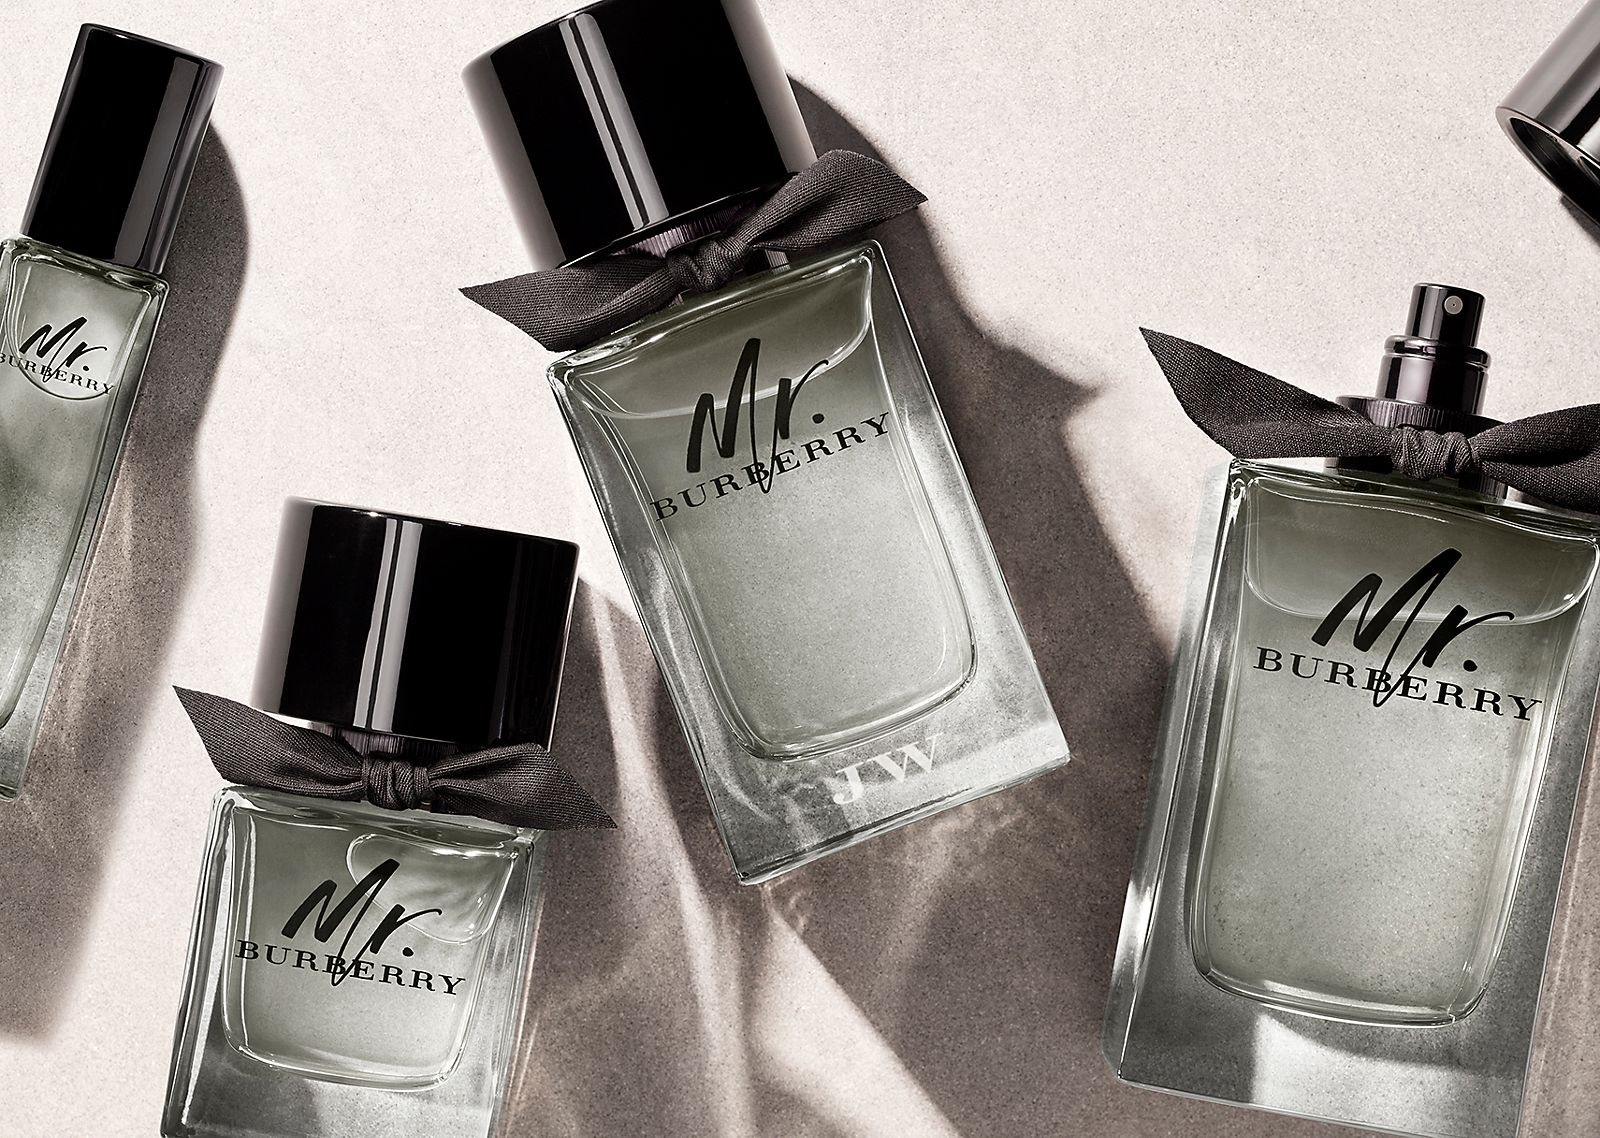 Mr. Burberry The new fragrance for men